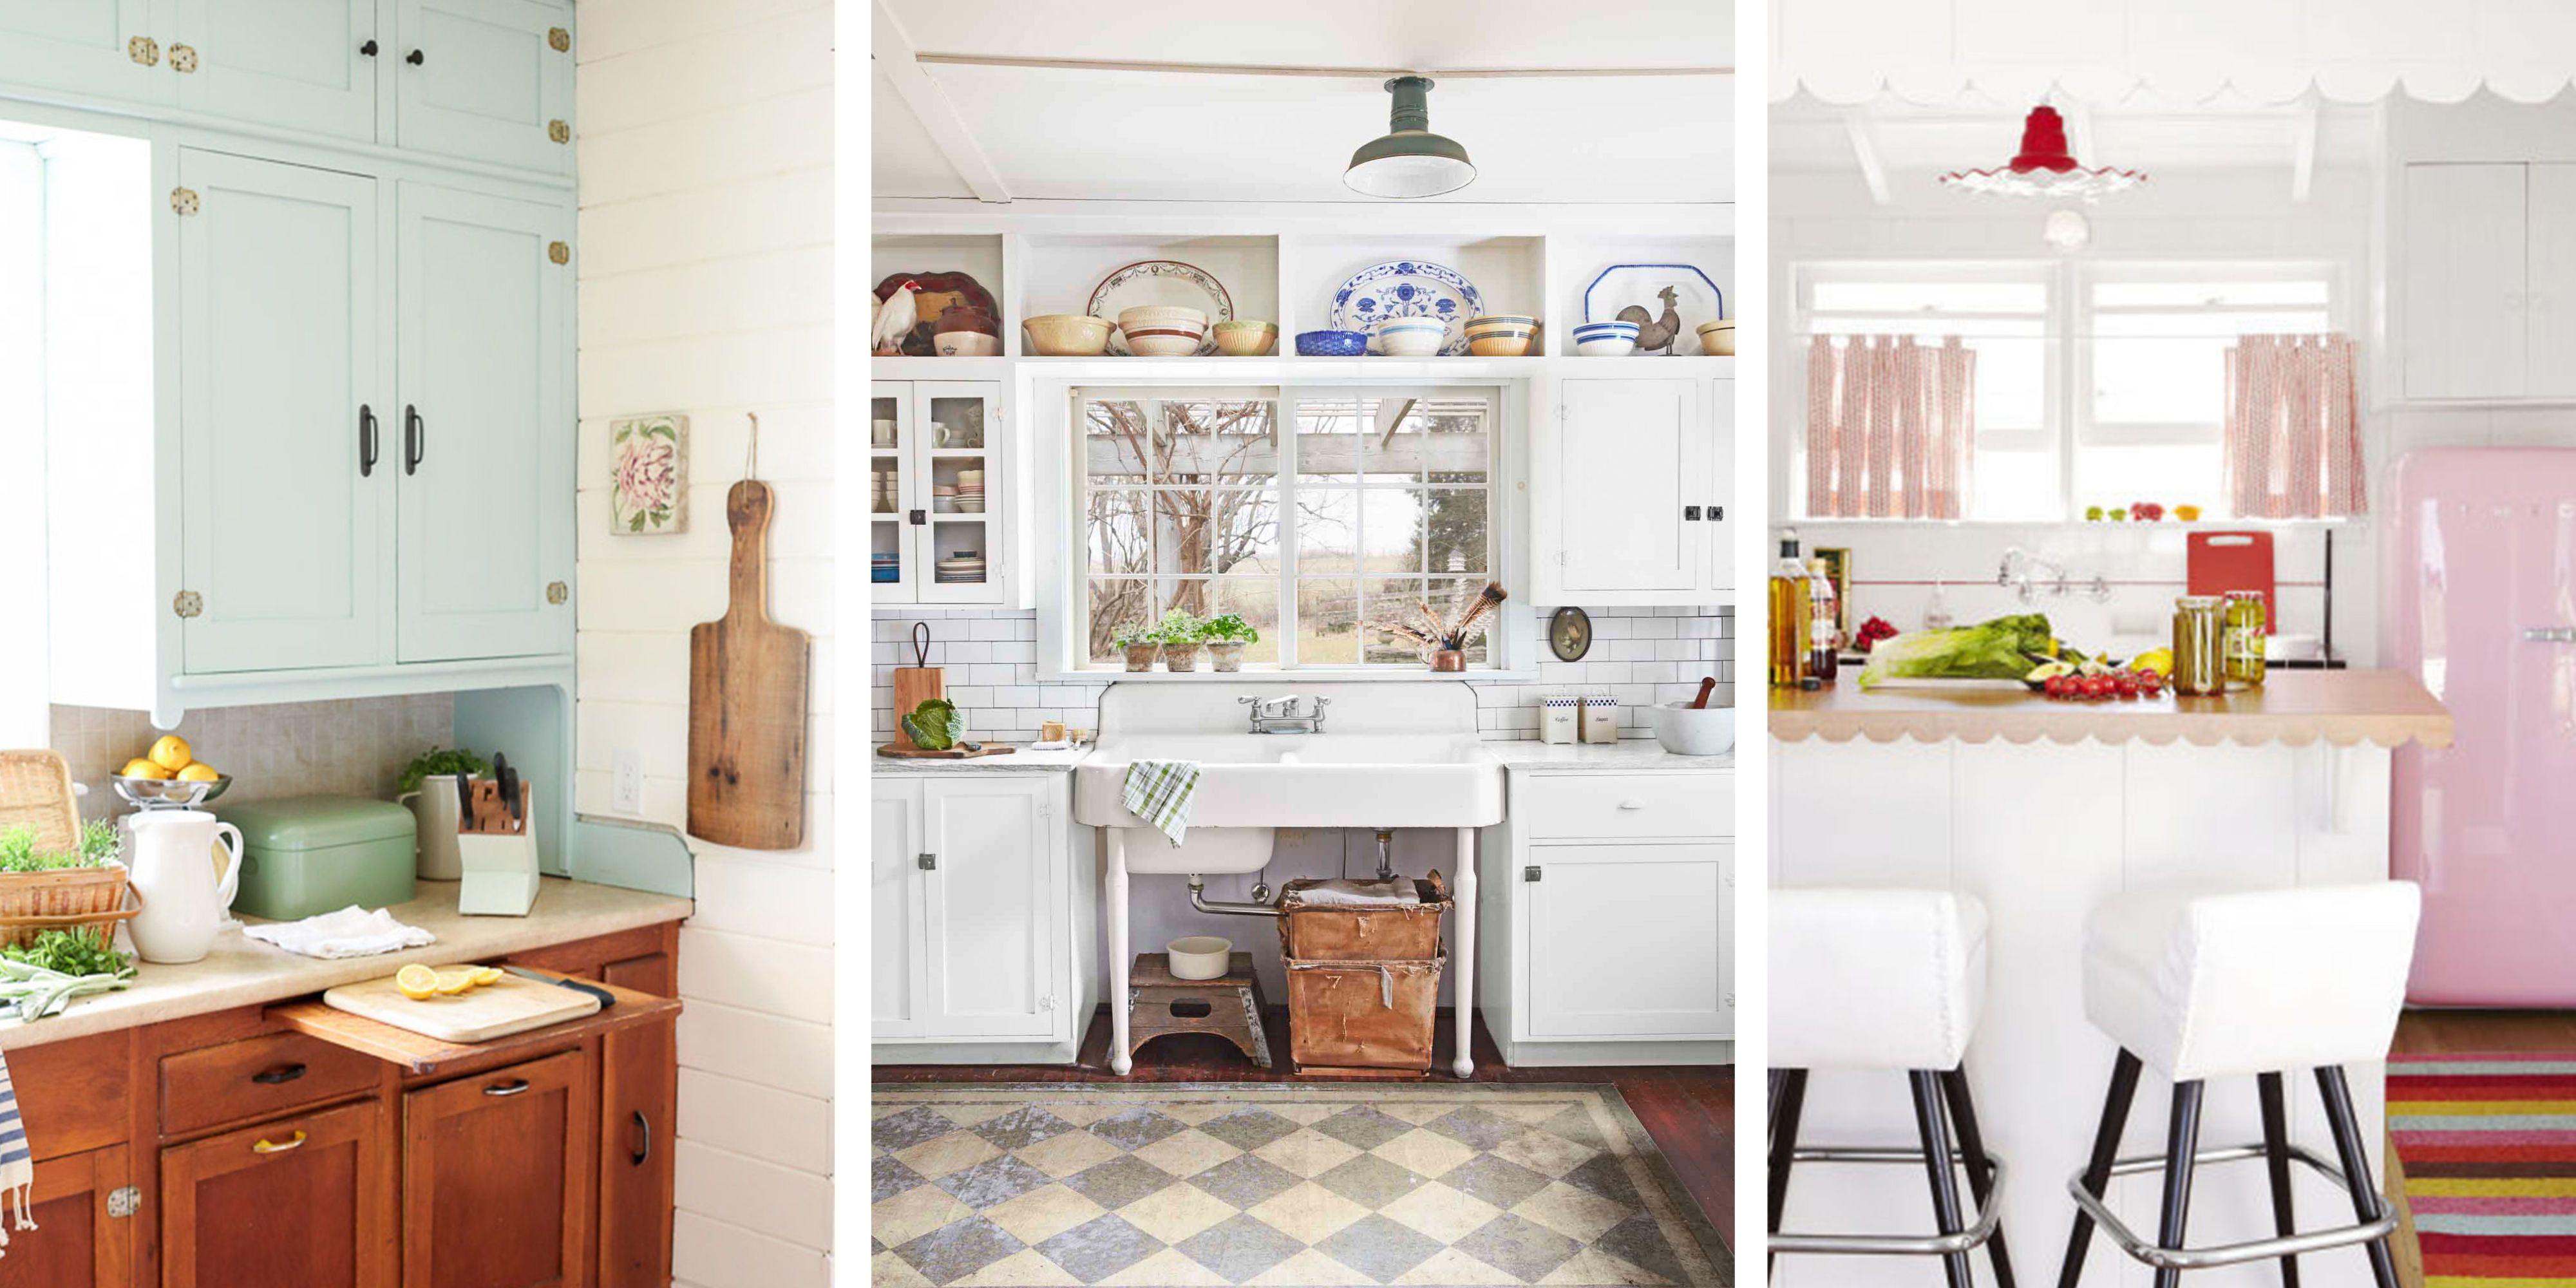 20 Vintage Kitchen Decorating Ideas , Design Inspiration for